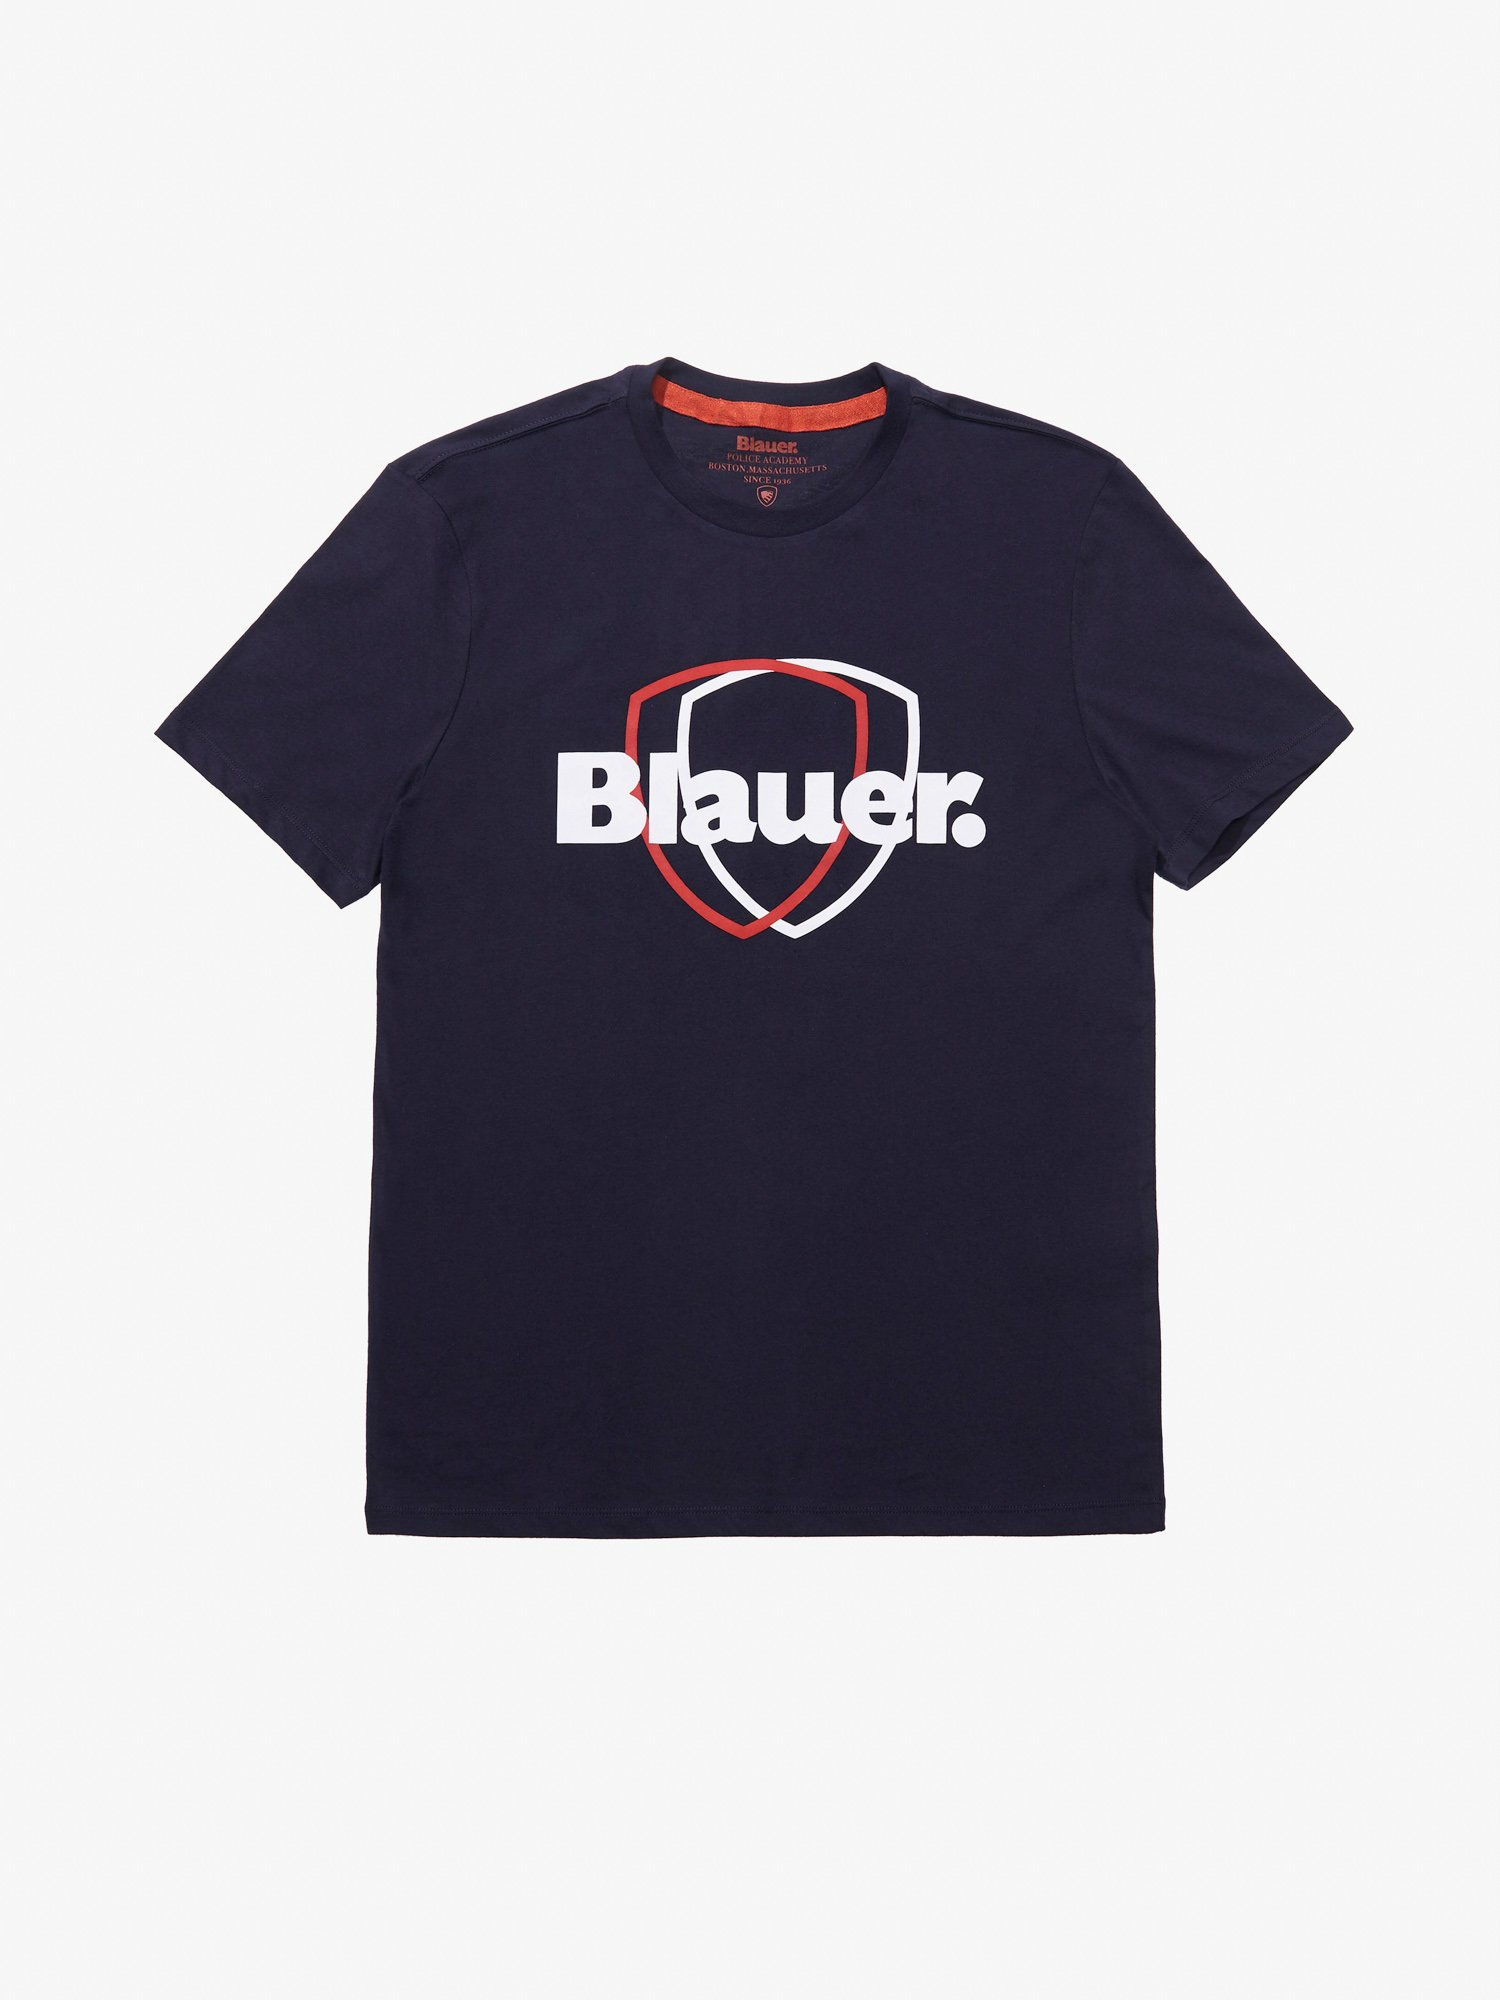 DOUBLE SHIELD T-SHIRT - Blauer